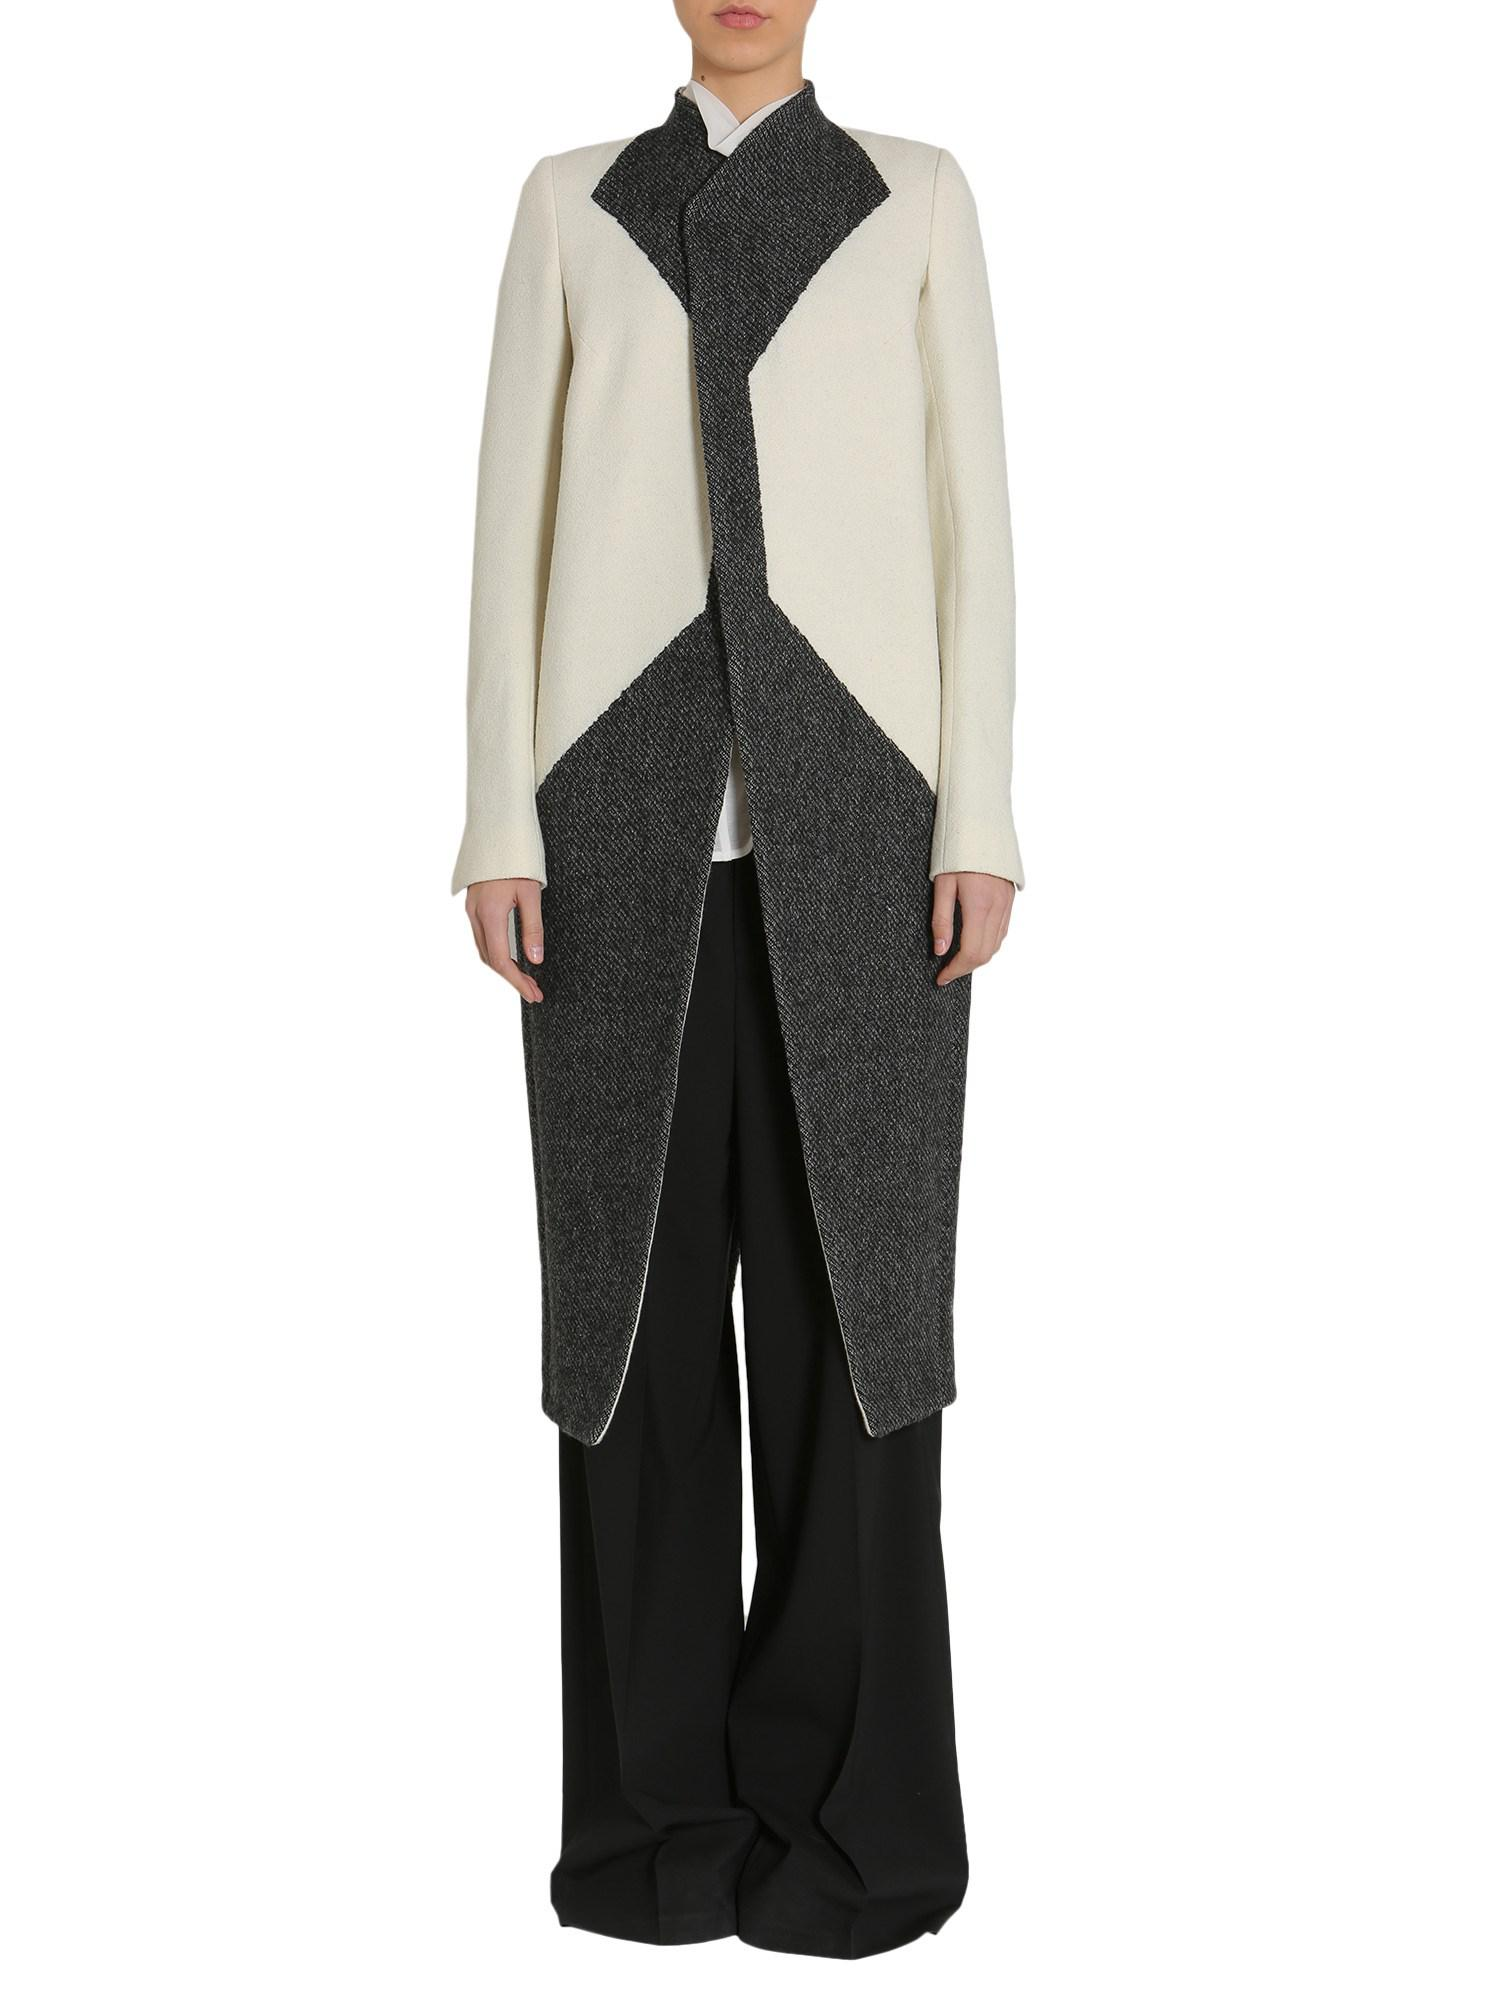 Lyst - Rick Owens Cappotto